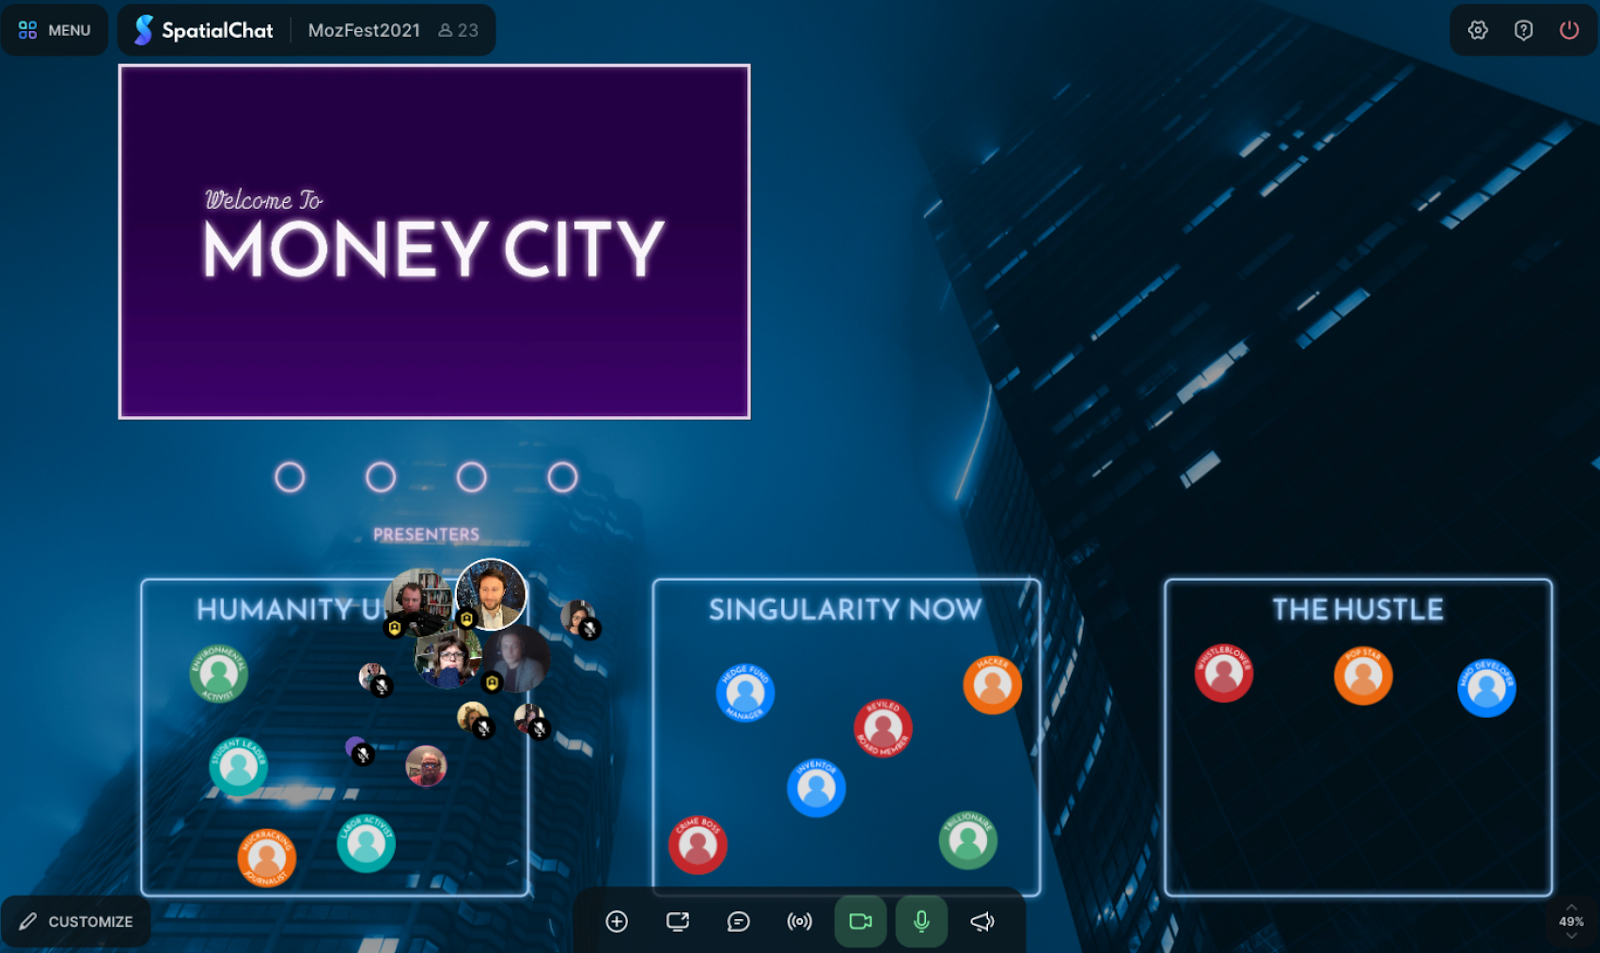 """Screenshot of computer screen during money simulation game - blue, dark background with a purple box in the left hand corner that says """"Money City"""" and other rectangles at the bottom where people icons are congregating."""